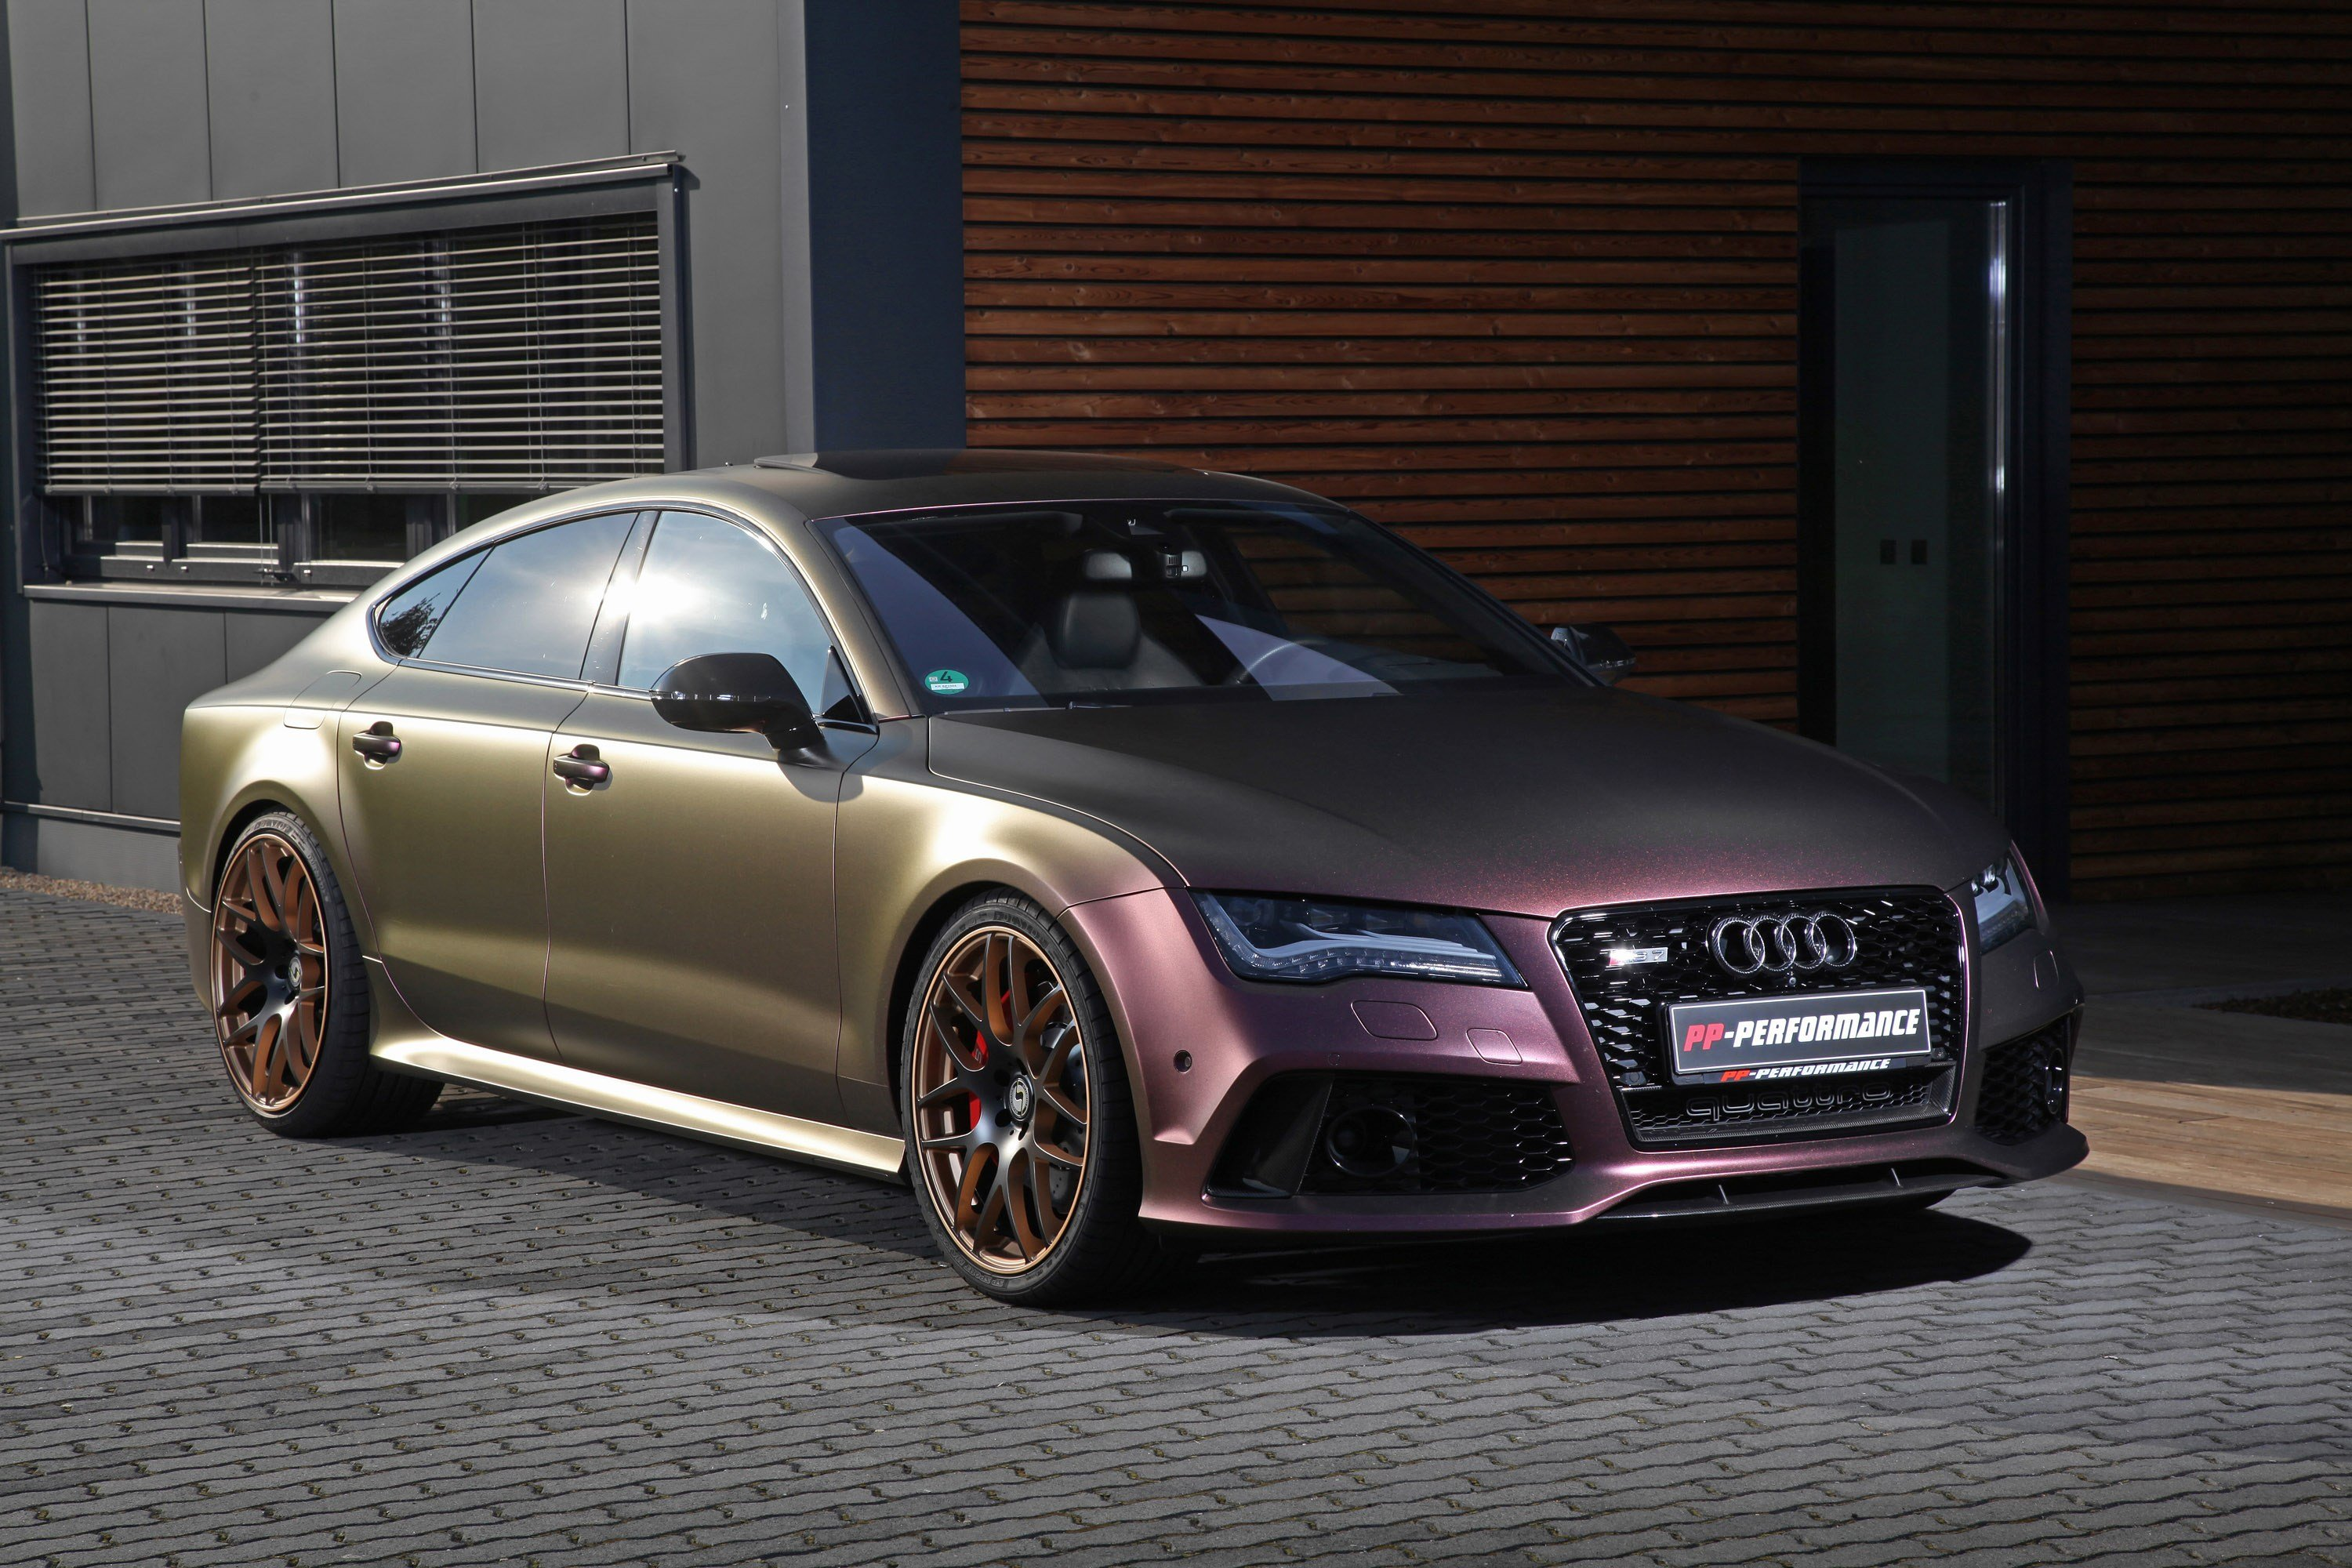 Latest Pp Performance Reveals A Special And Redesigned Audi Rs7 Free Download